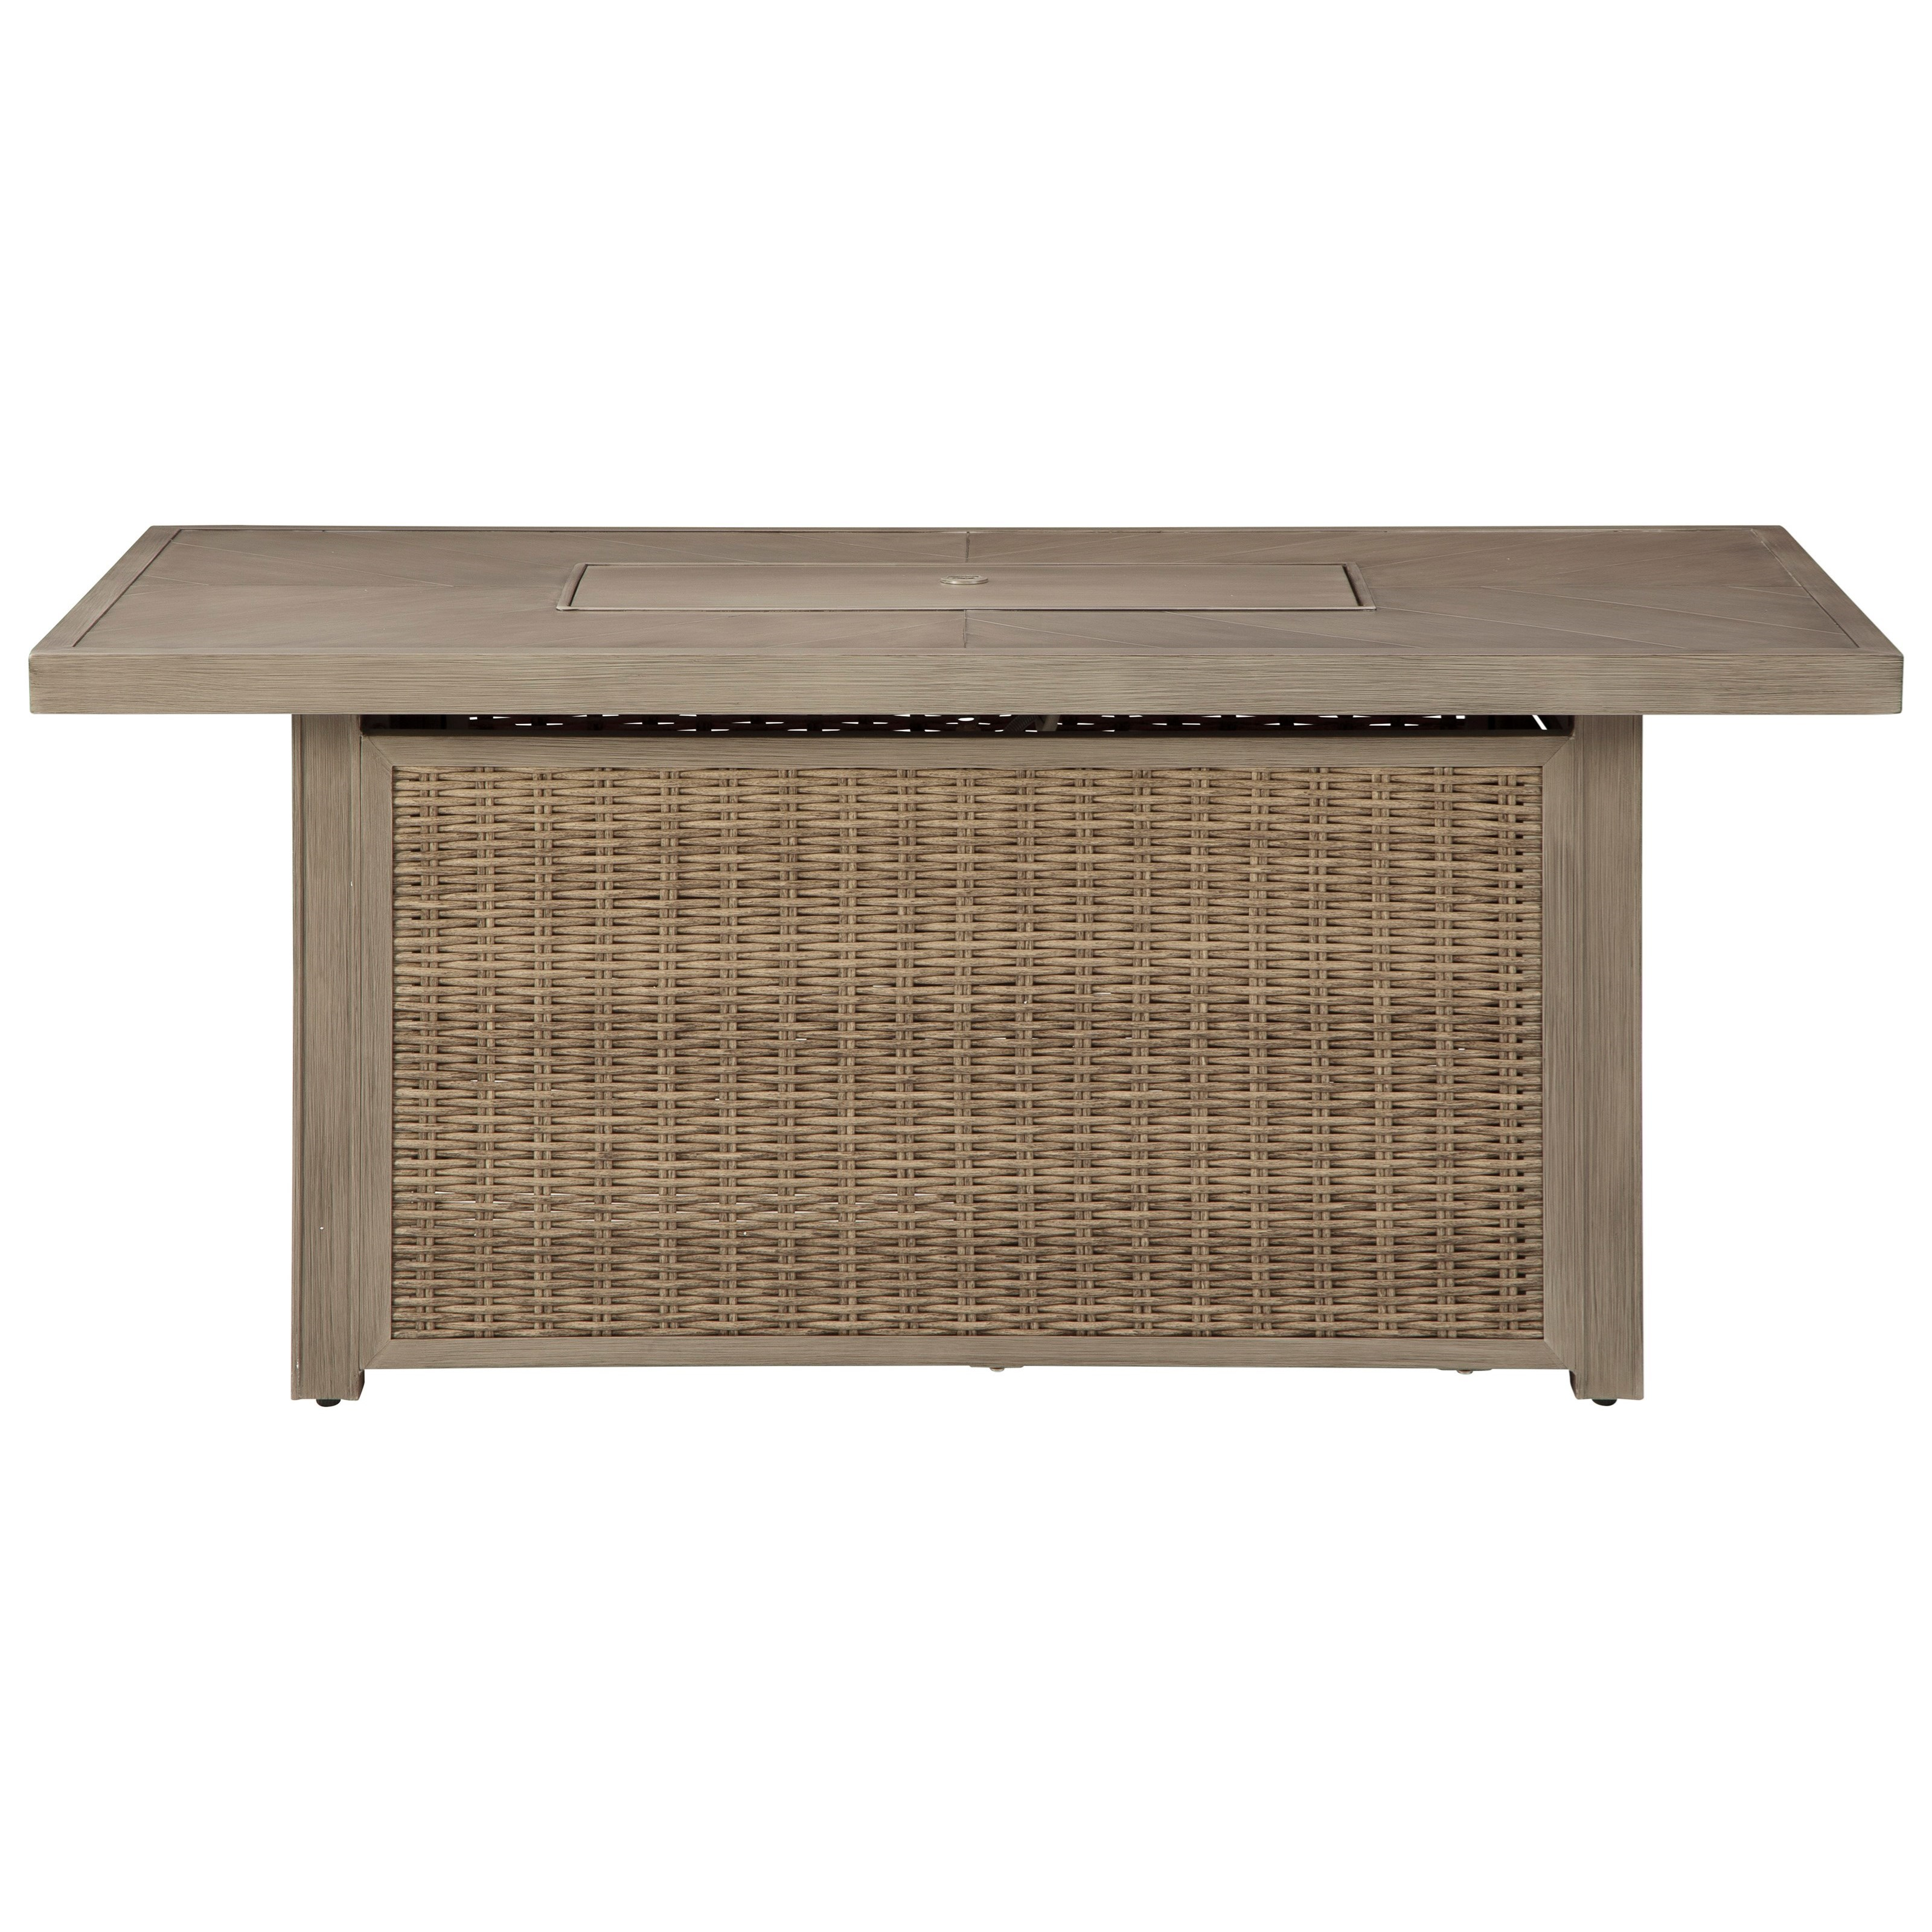 Beachcroft Rectangular Fire Pit Table by Signature Design by Ashley at Houston's Yuma Furniture